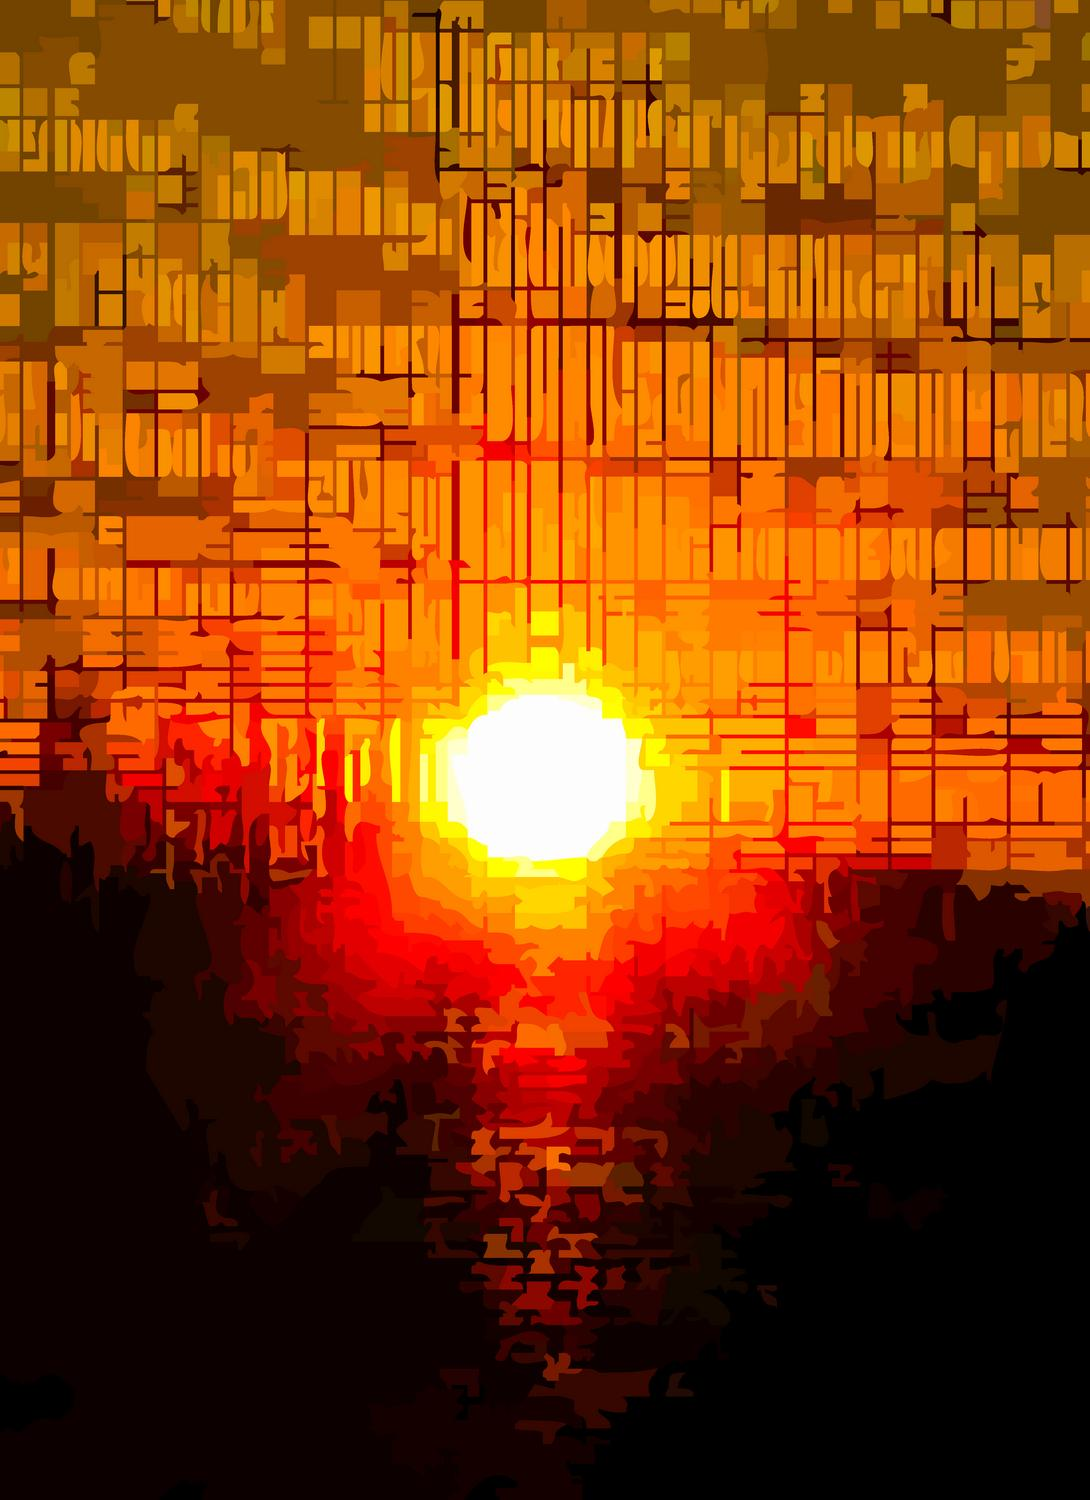 - Sunset in rhythmic beats and squares - - art  - photography - by Tony Karp